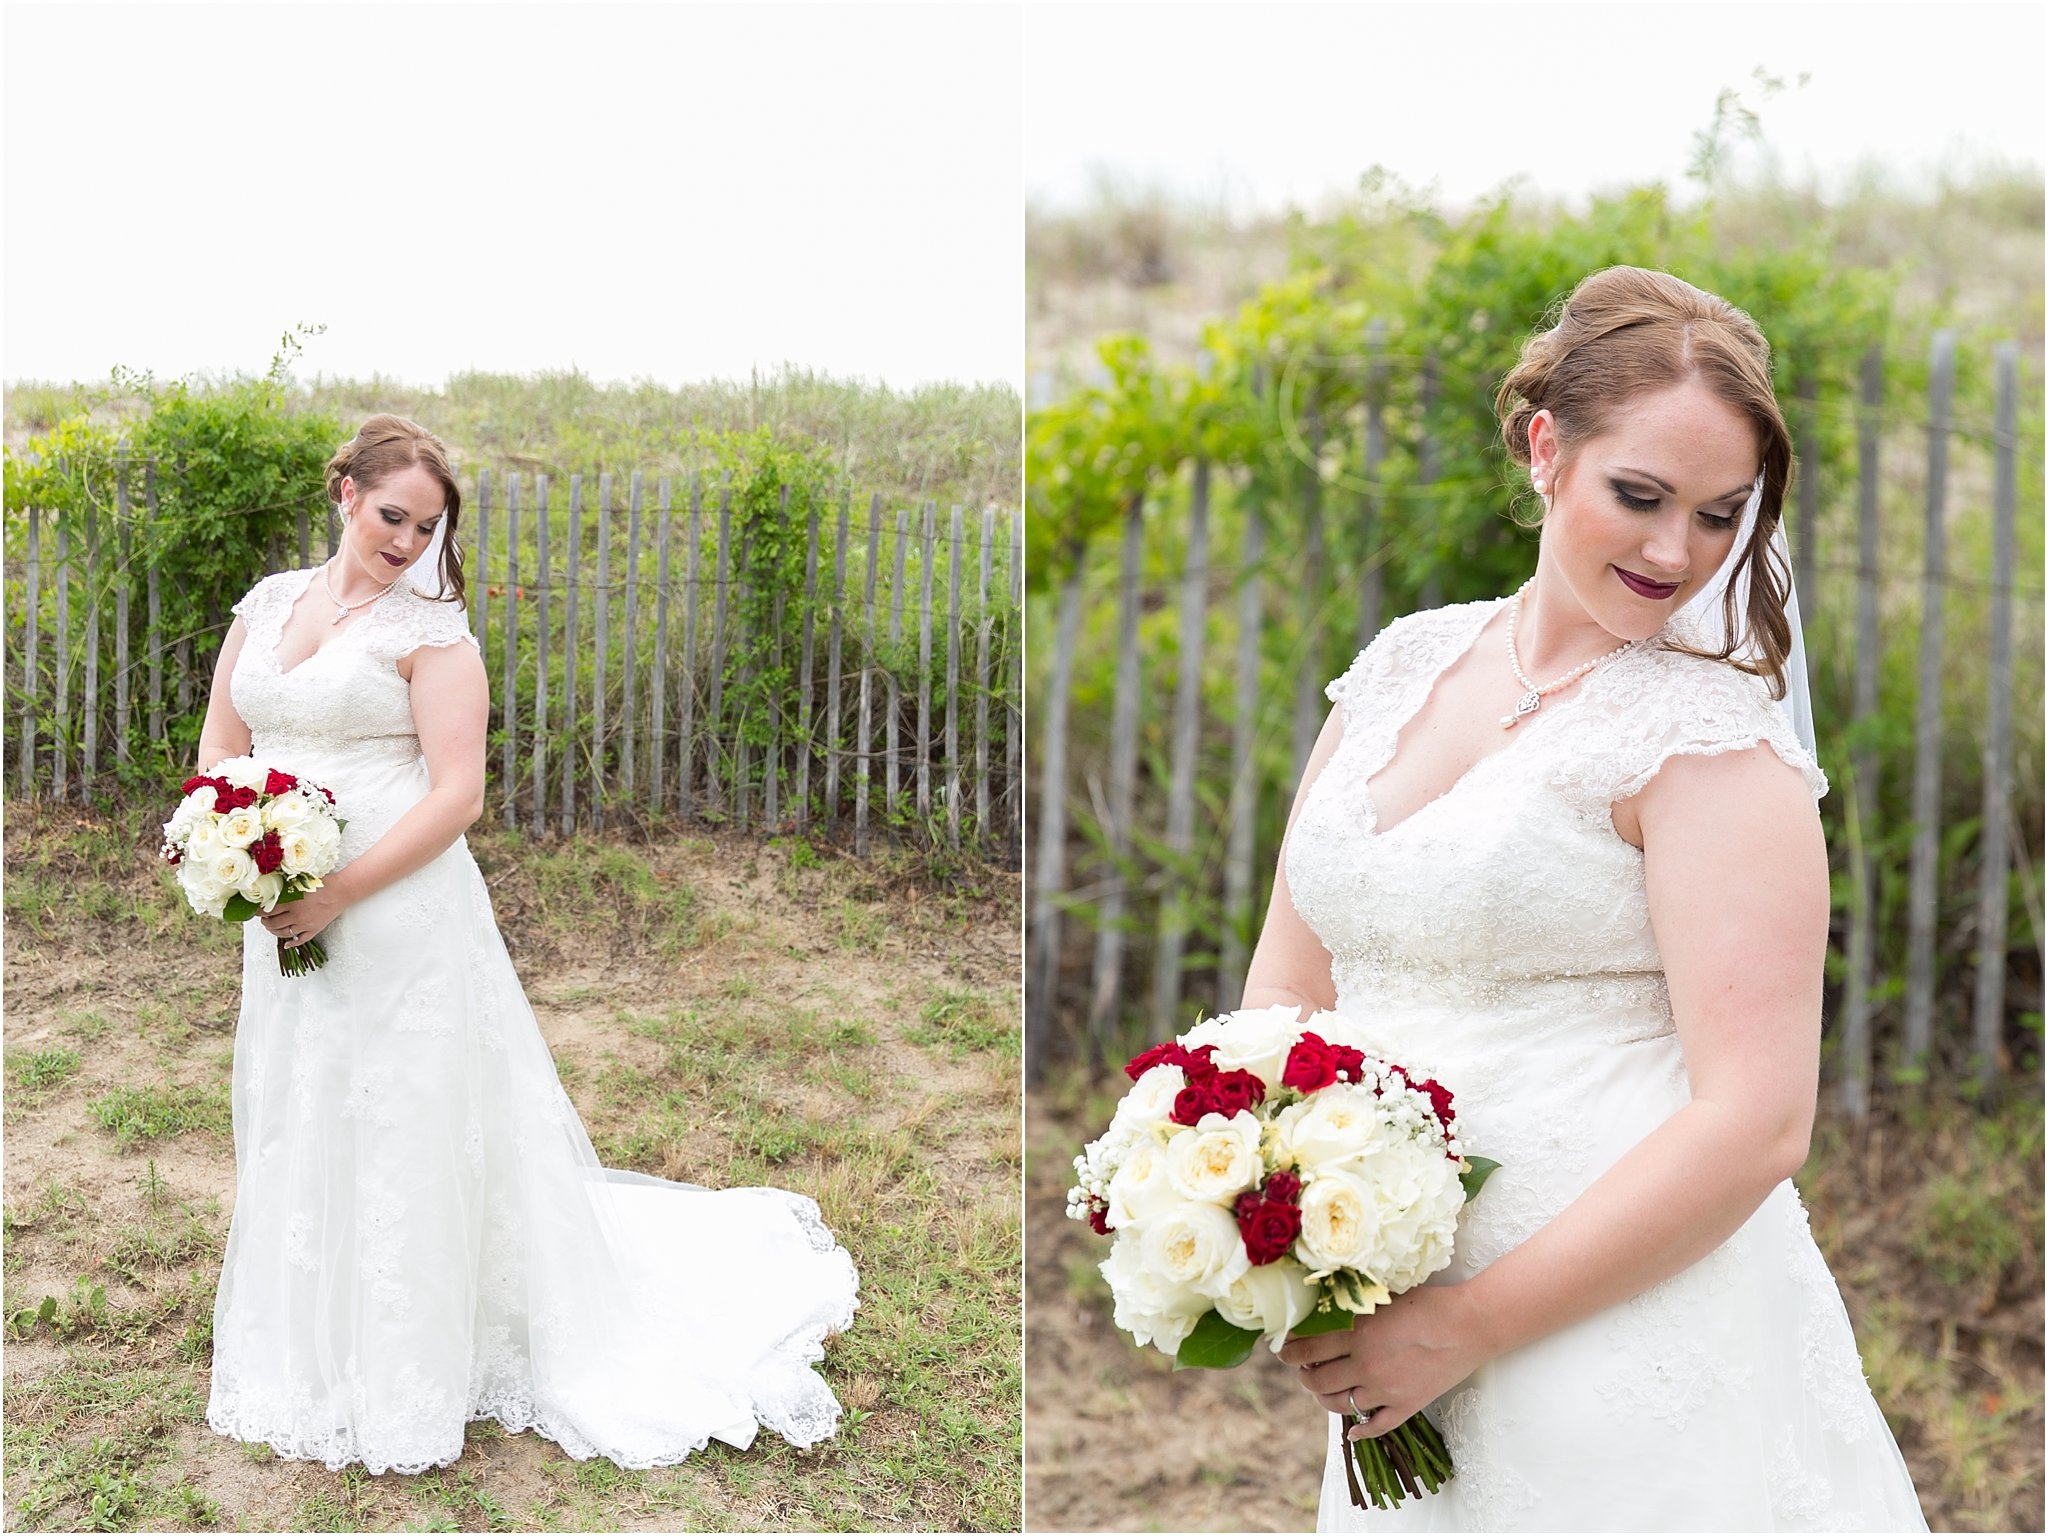 jessica_ryan_photography_virginia_beach_wedding_hampton_roads_virginia_seabreeze_damn_neck_base_wedding_0940